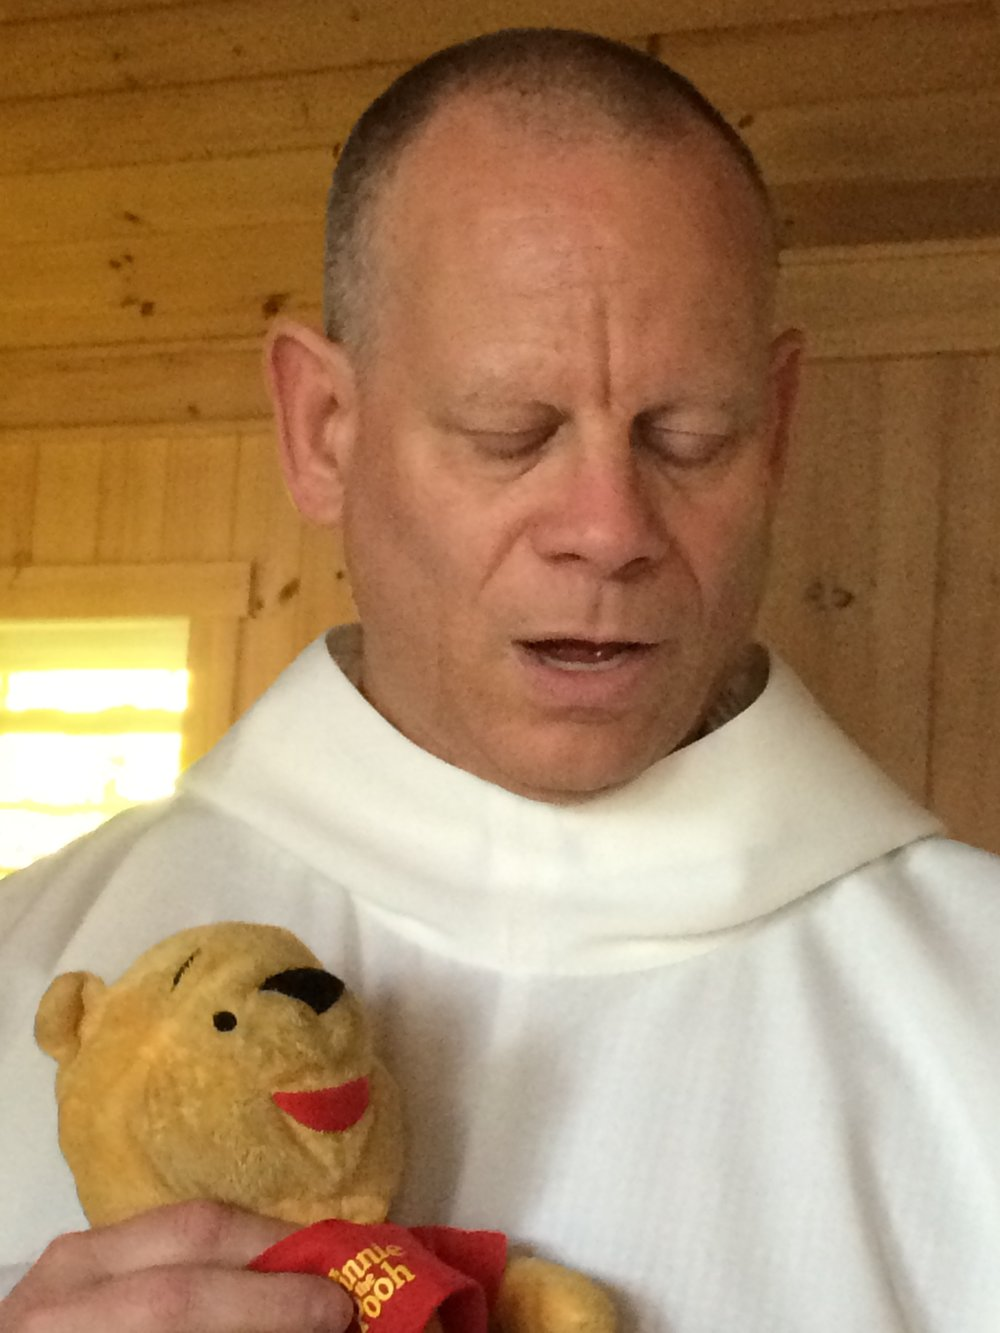 David. What he is doing in his clerical robe with Winnie The Pooh I do not know.